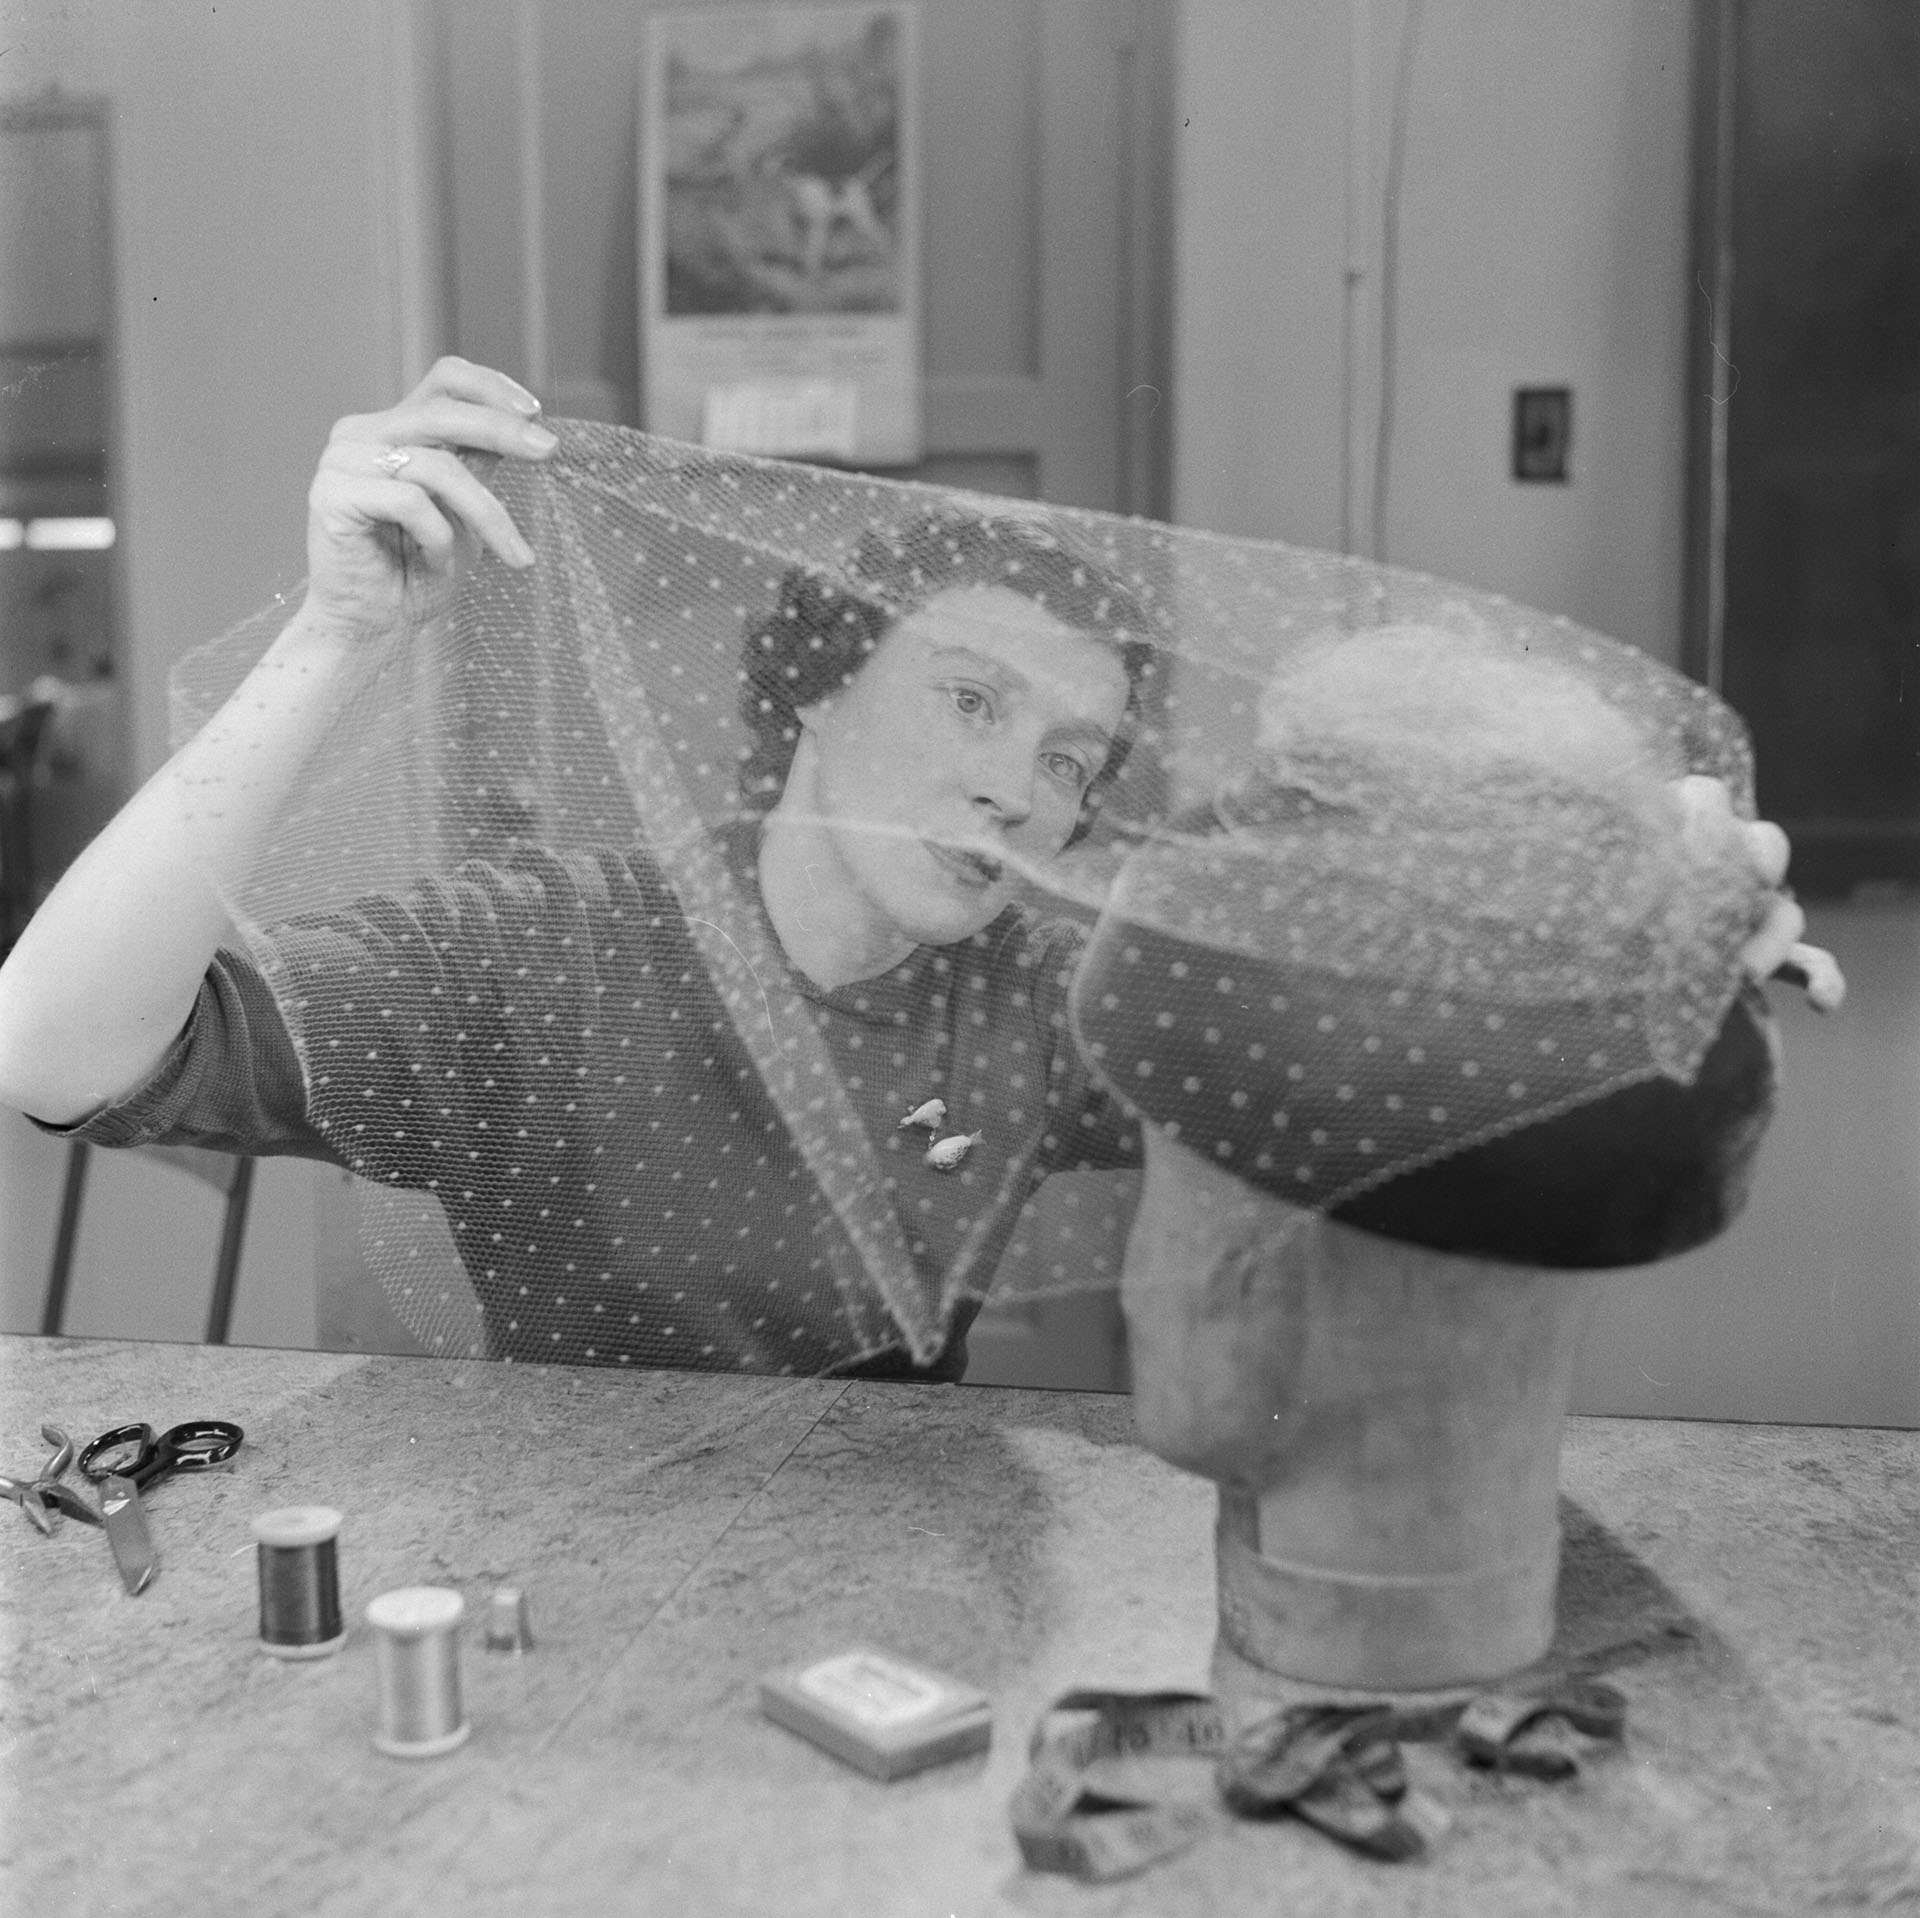 Woman at millinery school working on a hat